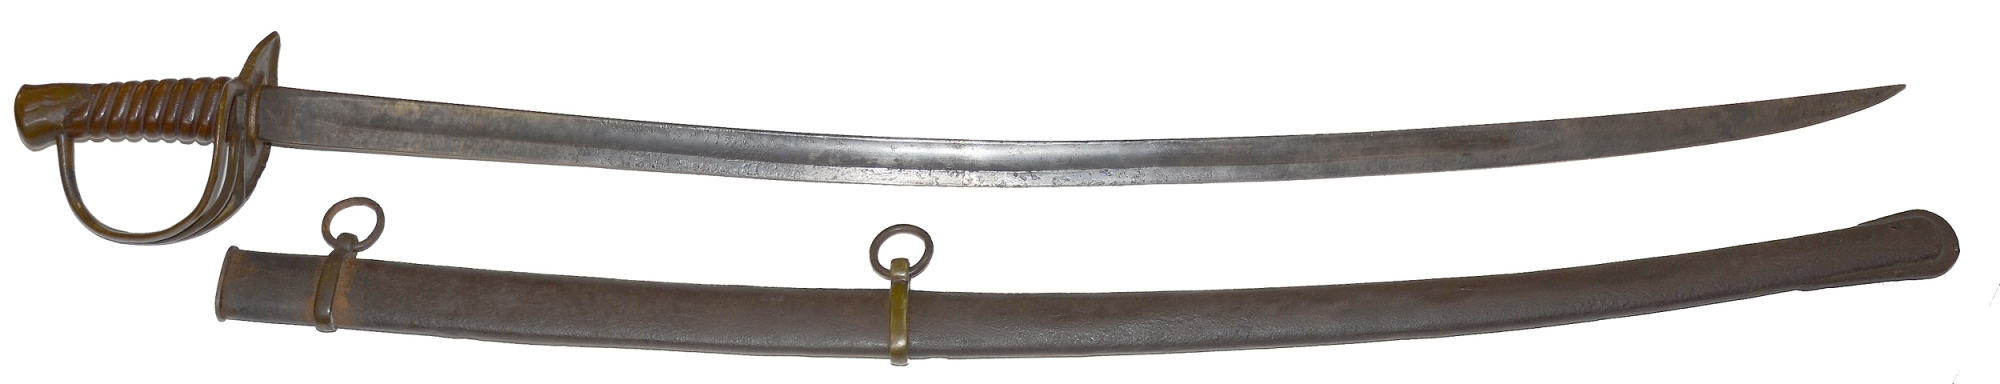 CONFEDERATE ENLISTED CAVALRY SABER WITH SCABBARD AND POLISHED WOOD GRIP BY FROELICH